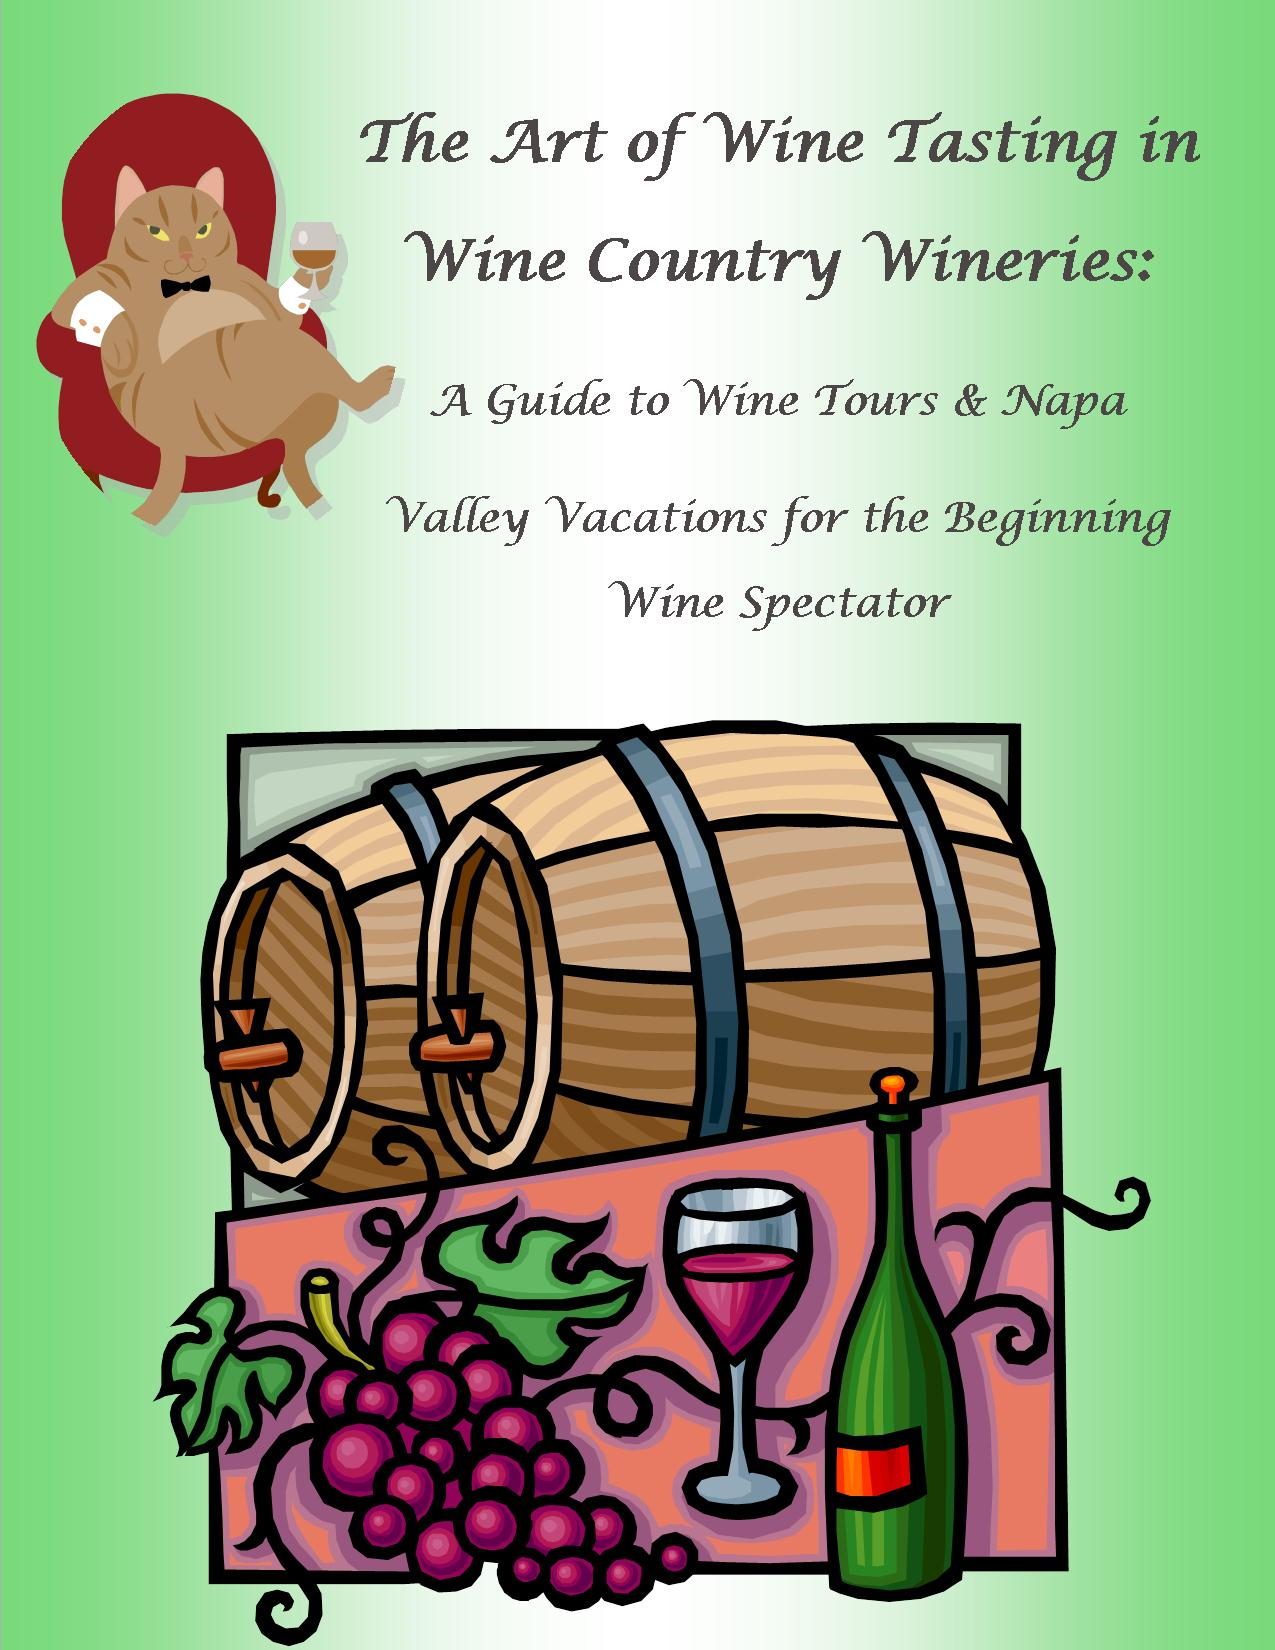 The Art of Wine Tasting in Wine Country Wineries: A Guide to Wine Tours & Napa Valley Vacations for the Beginning Wine Spectator